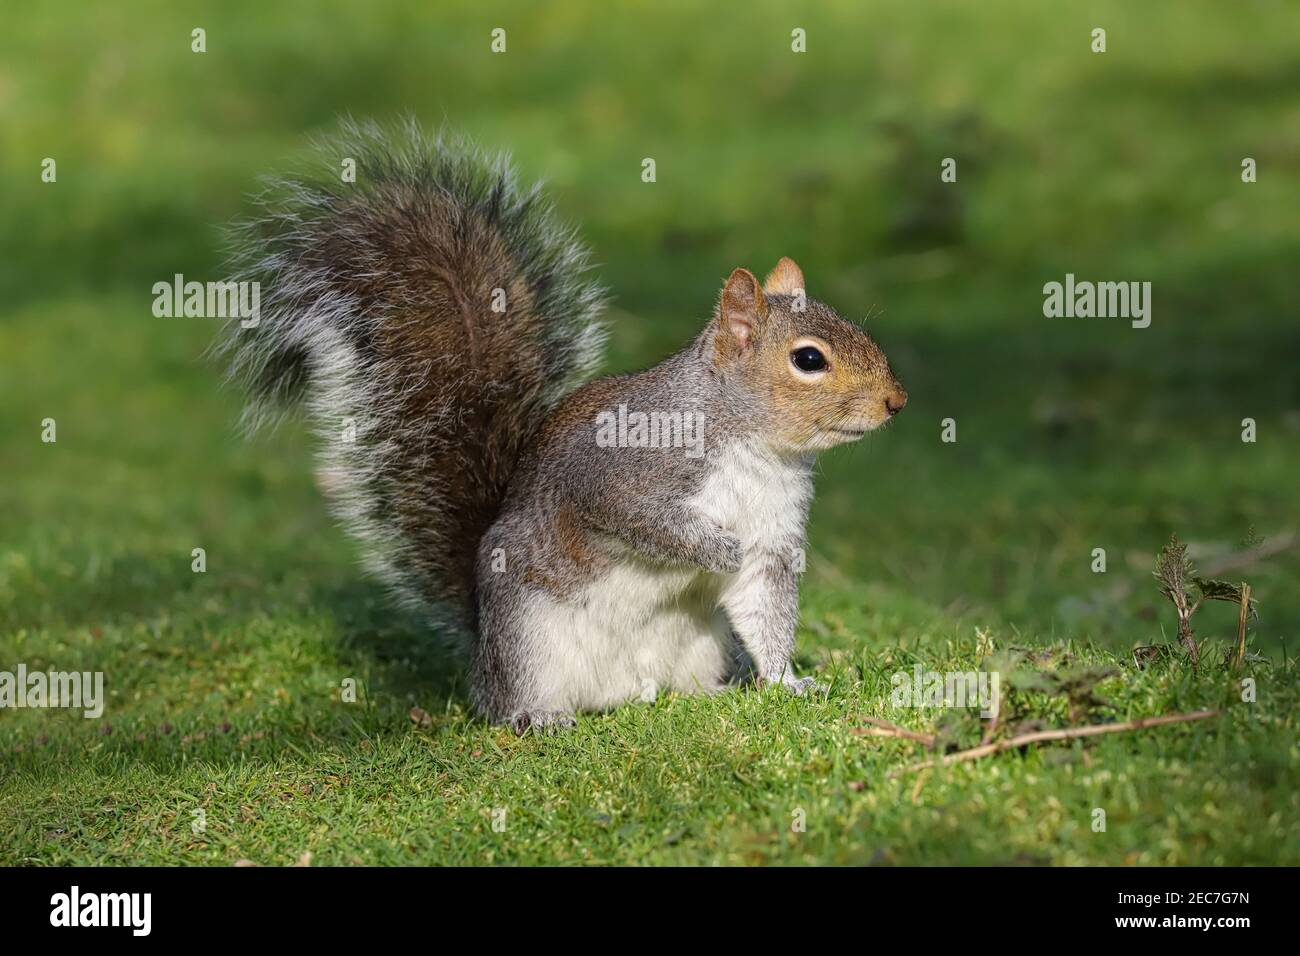 Close up of a Grey Squirrel sitting on the ground Stock Photo